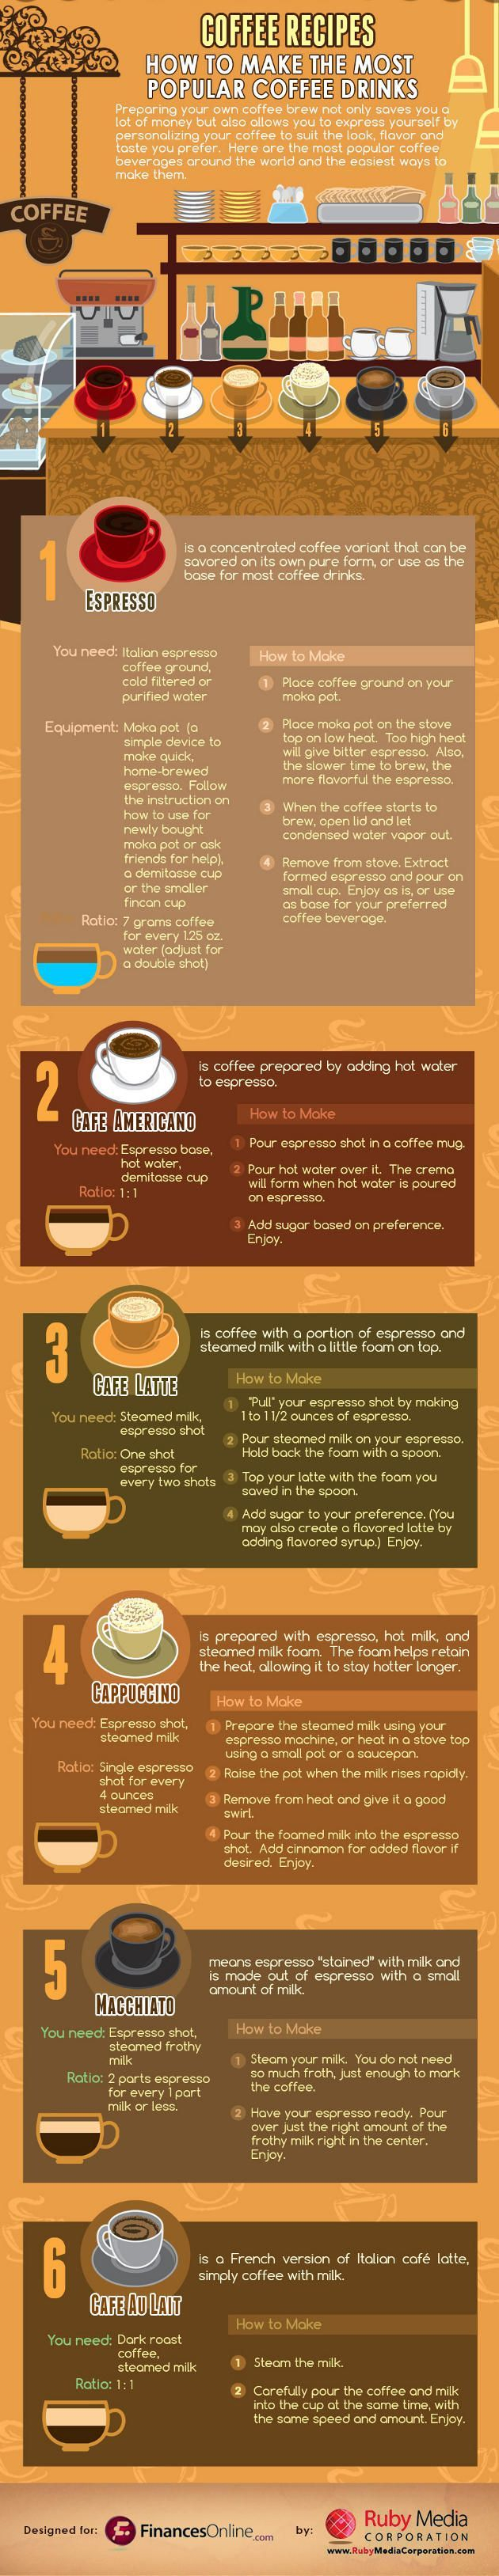 Coffee Recipes: Tips to Make the Most Popular Coffee Drinks